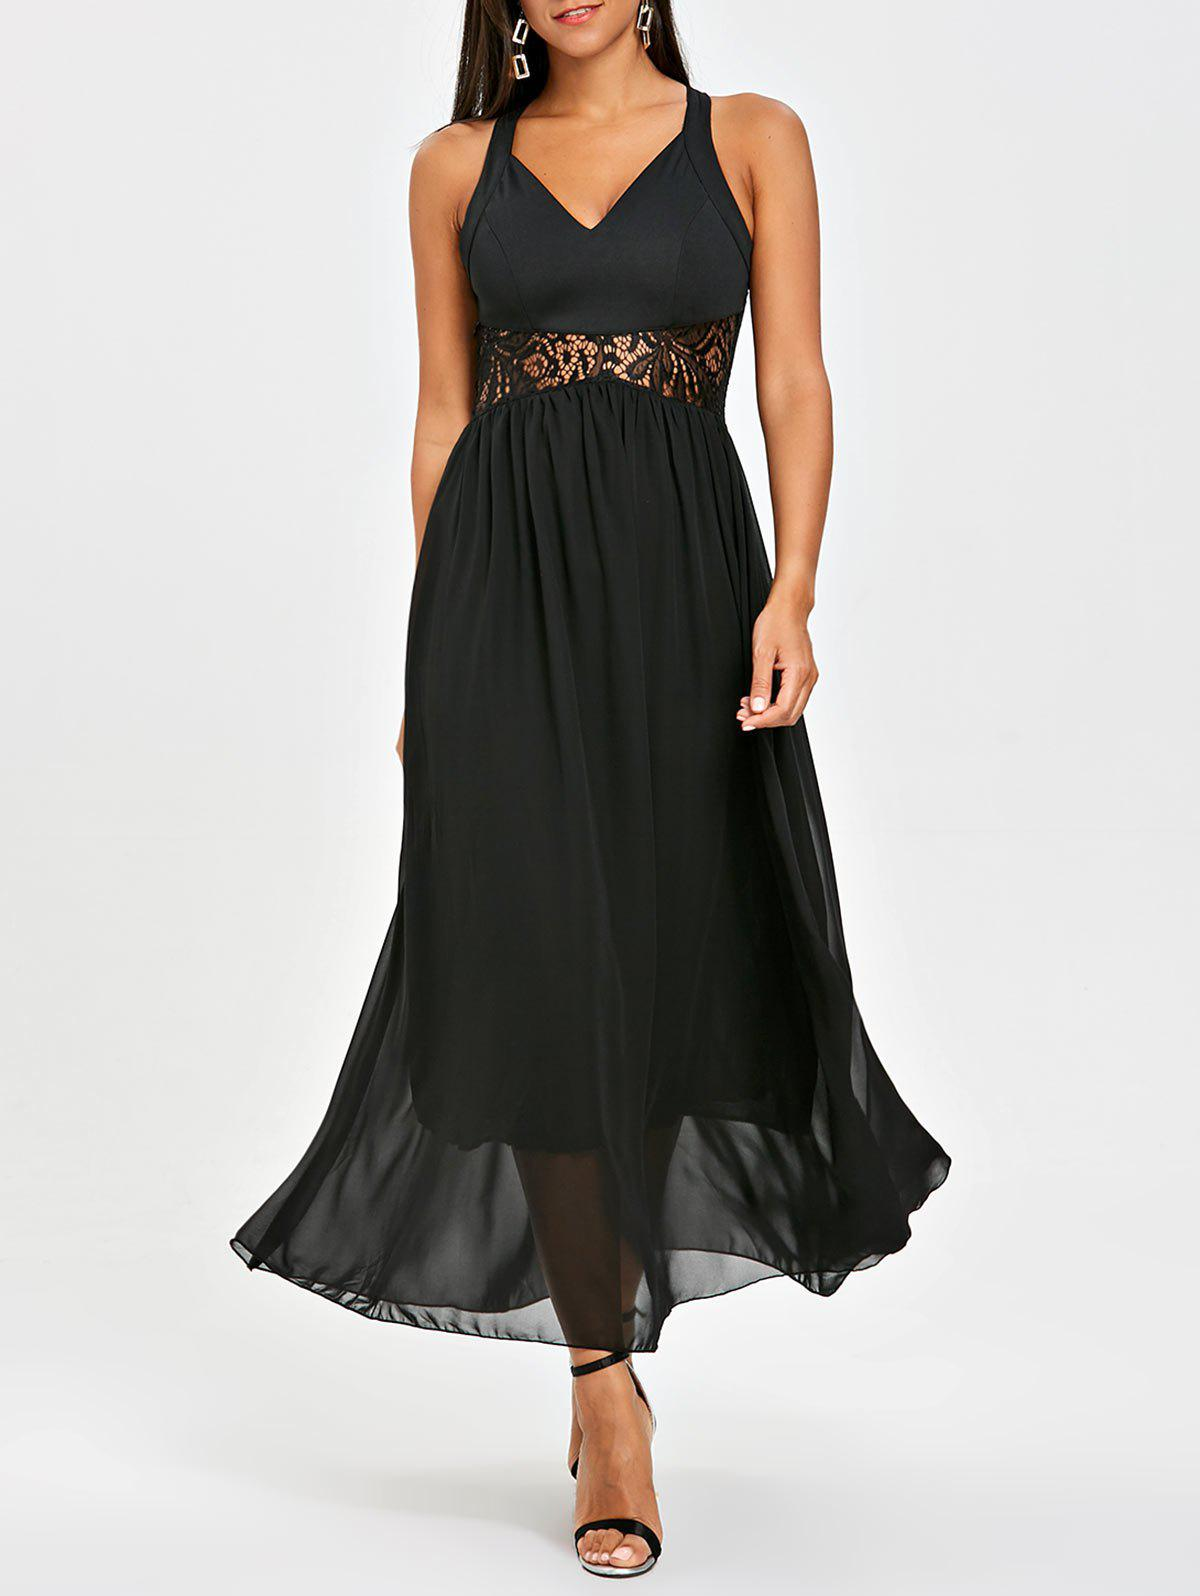 Chiffon Lace Panel Maxi Dress lace panel chiffon maxi evening engagement prom dress